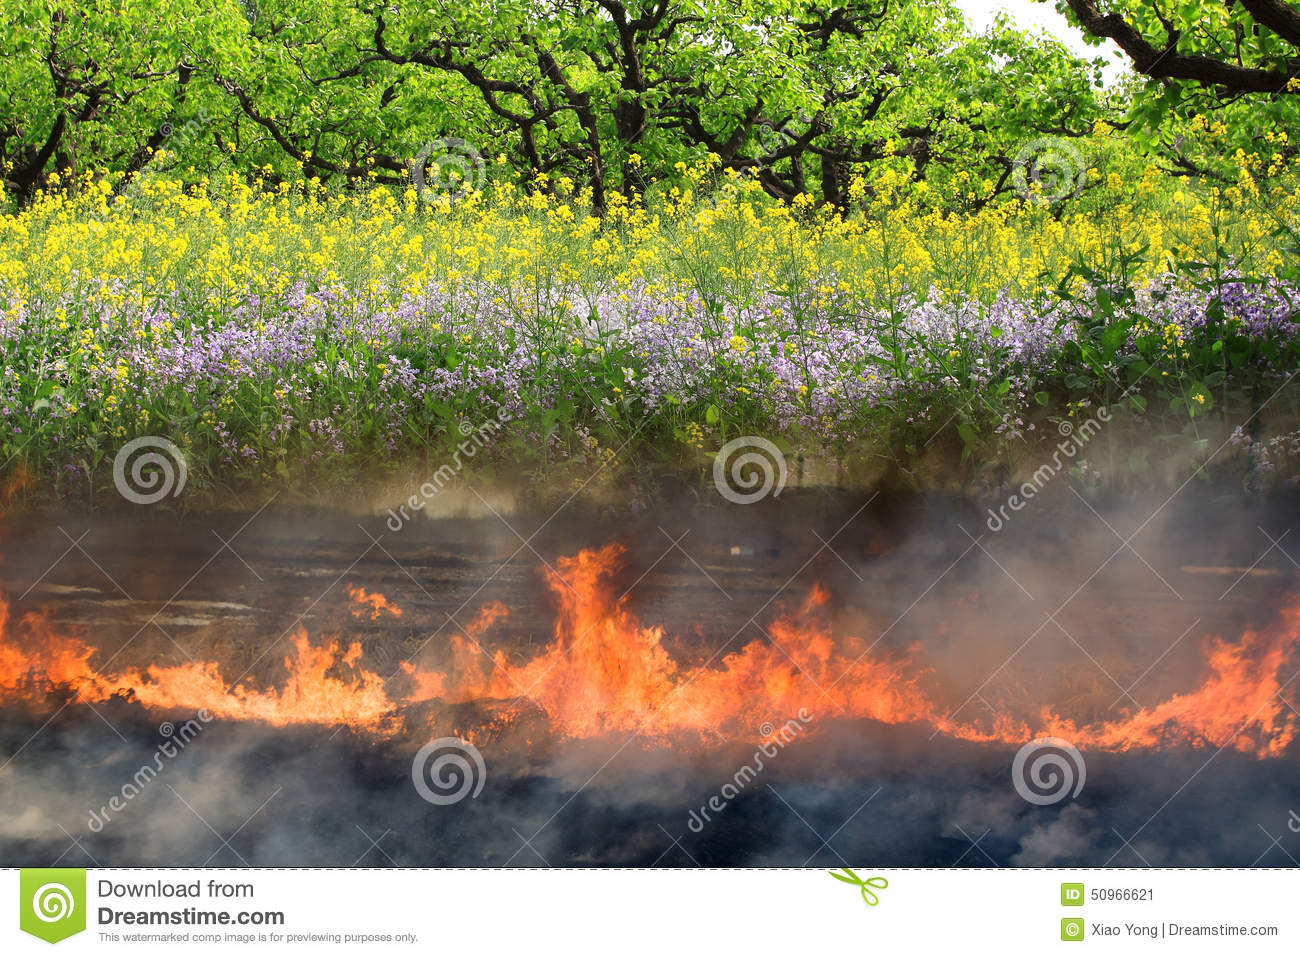 Life and death stock image. Image of flowers, burned , 50966621